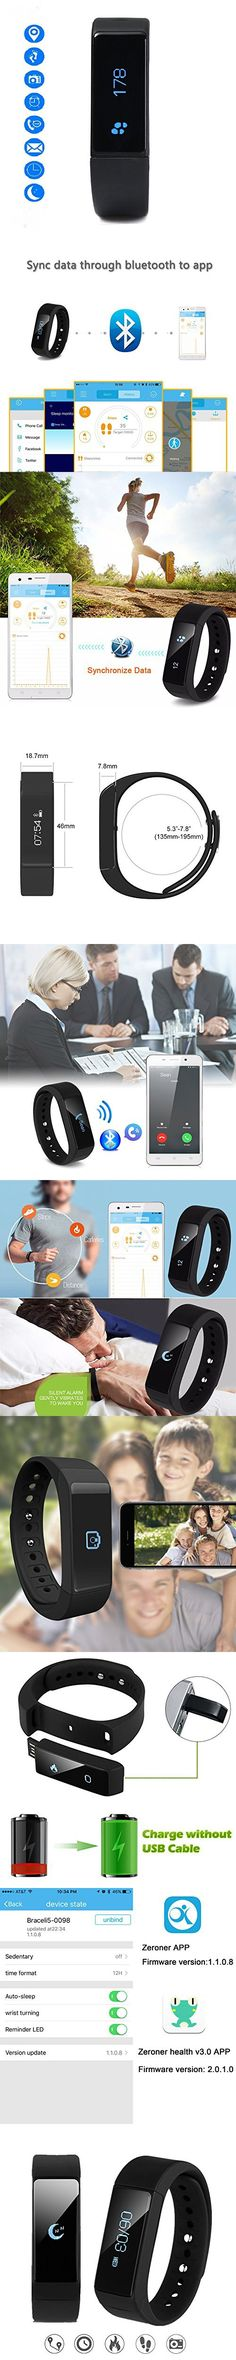 Activity Tracker, 007plus® I5 Plus Fitness Tracker Health Sleep Monitor Pedometer Wristband (Black)